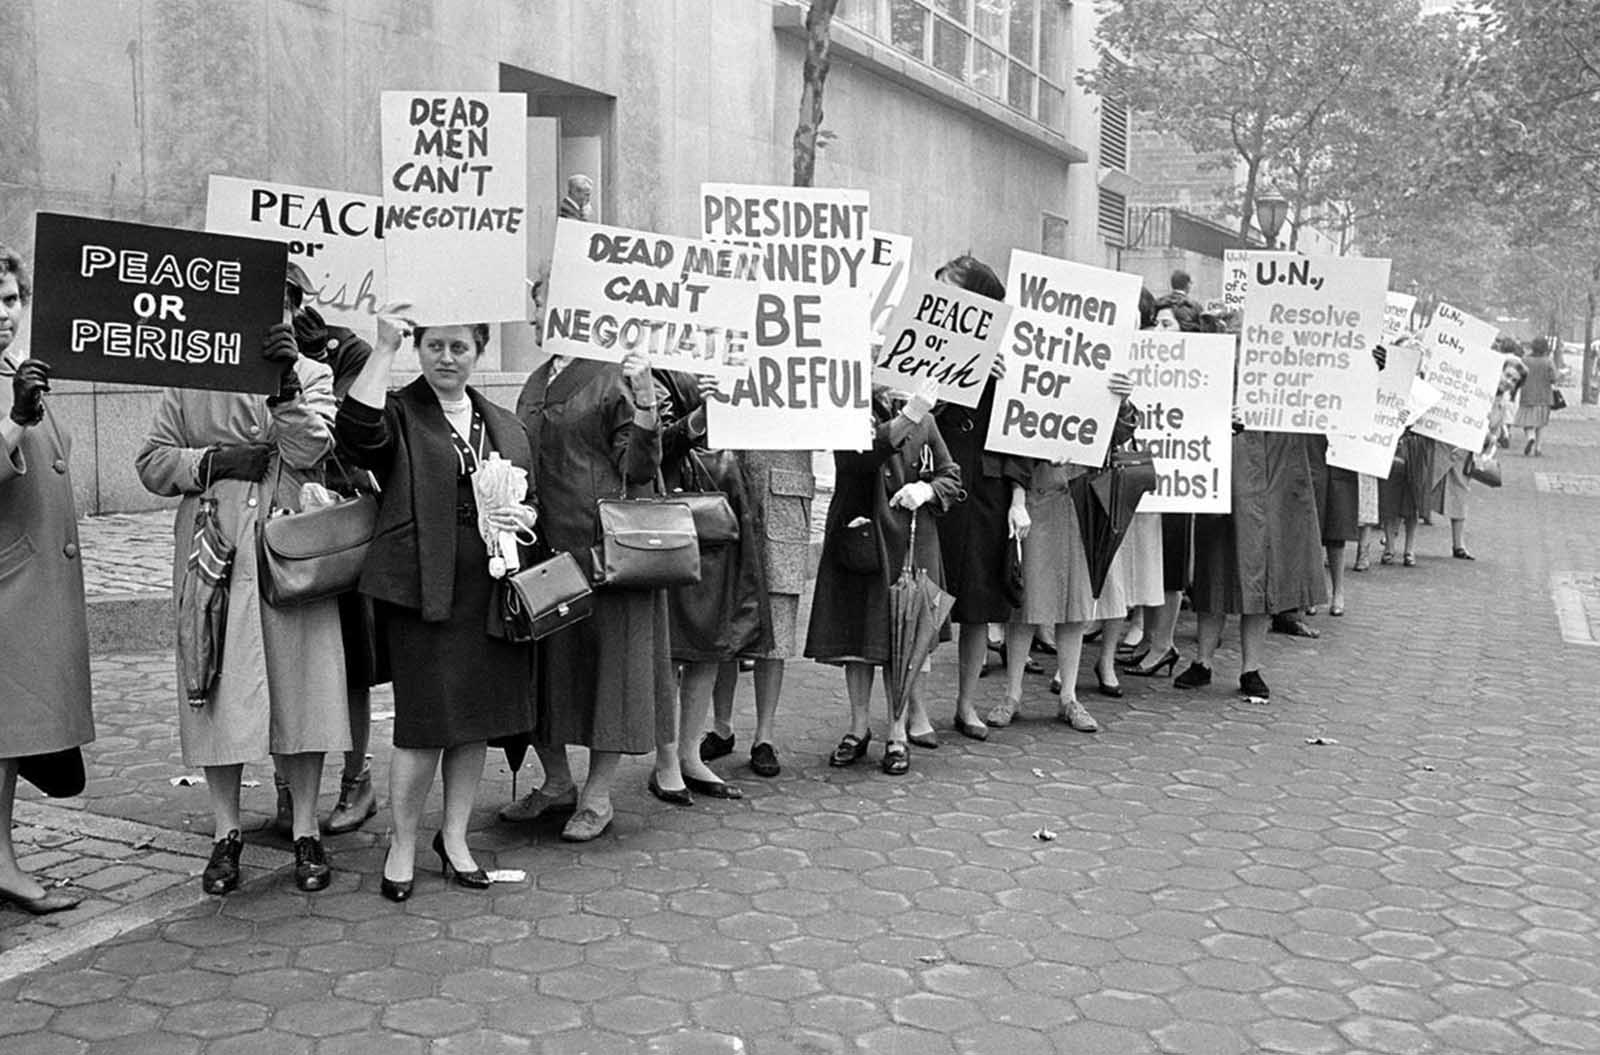 Picketers representing an organization known as Women Strike for Peace carry placards outside the United Nations headquarters in New York City, where the U.N. Security Council considers the Cuban missile crisis in a special meeting, on October 23, 1962.